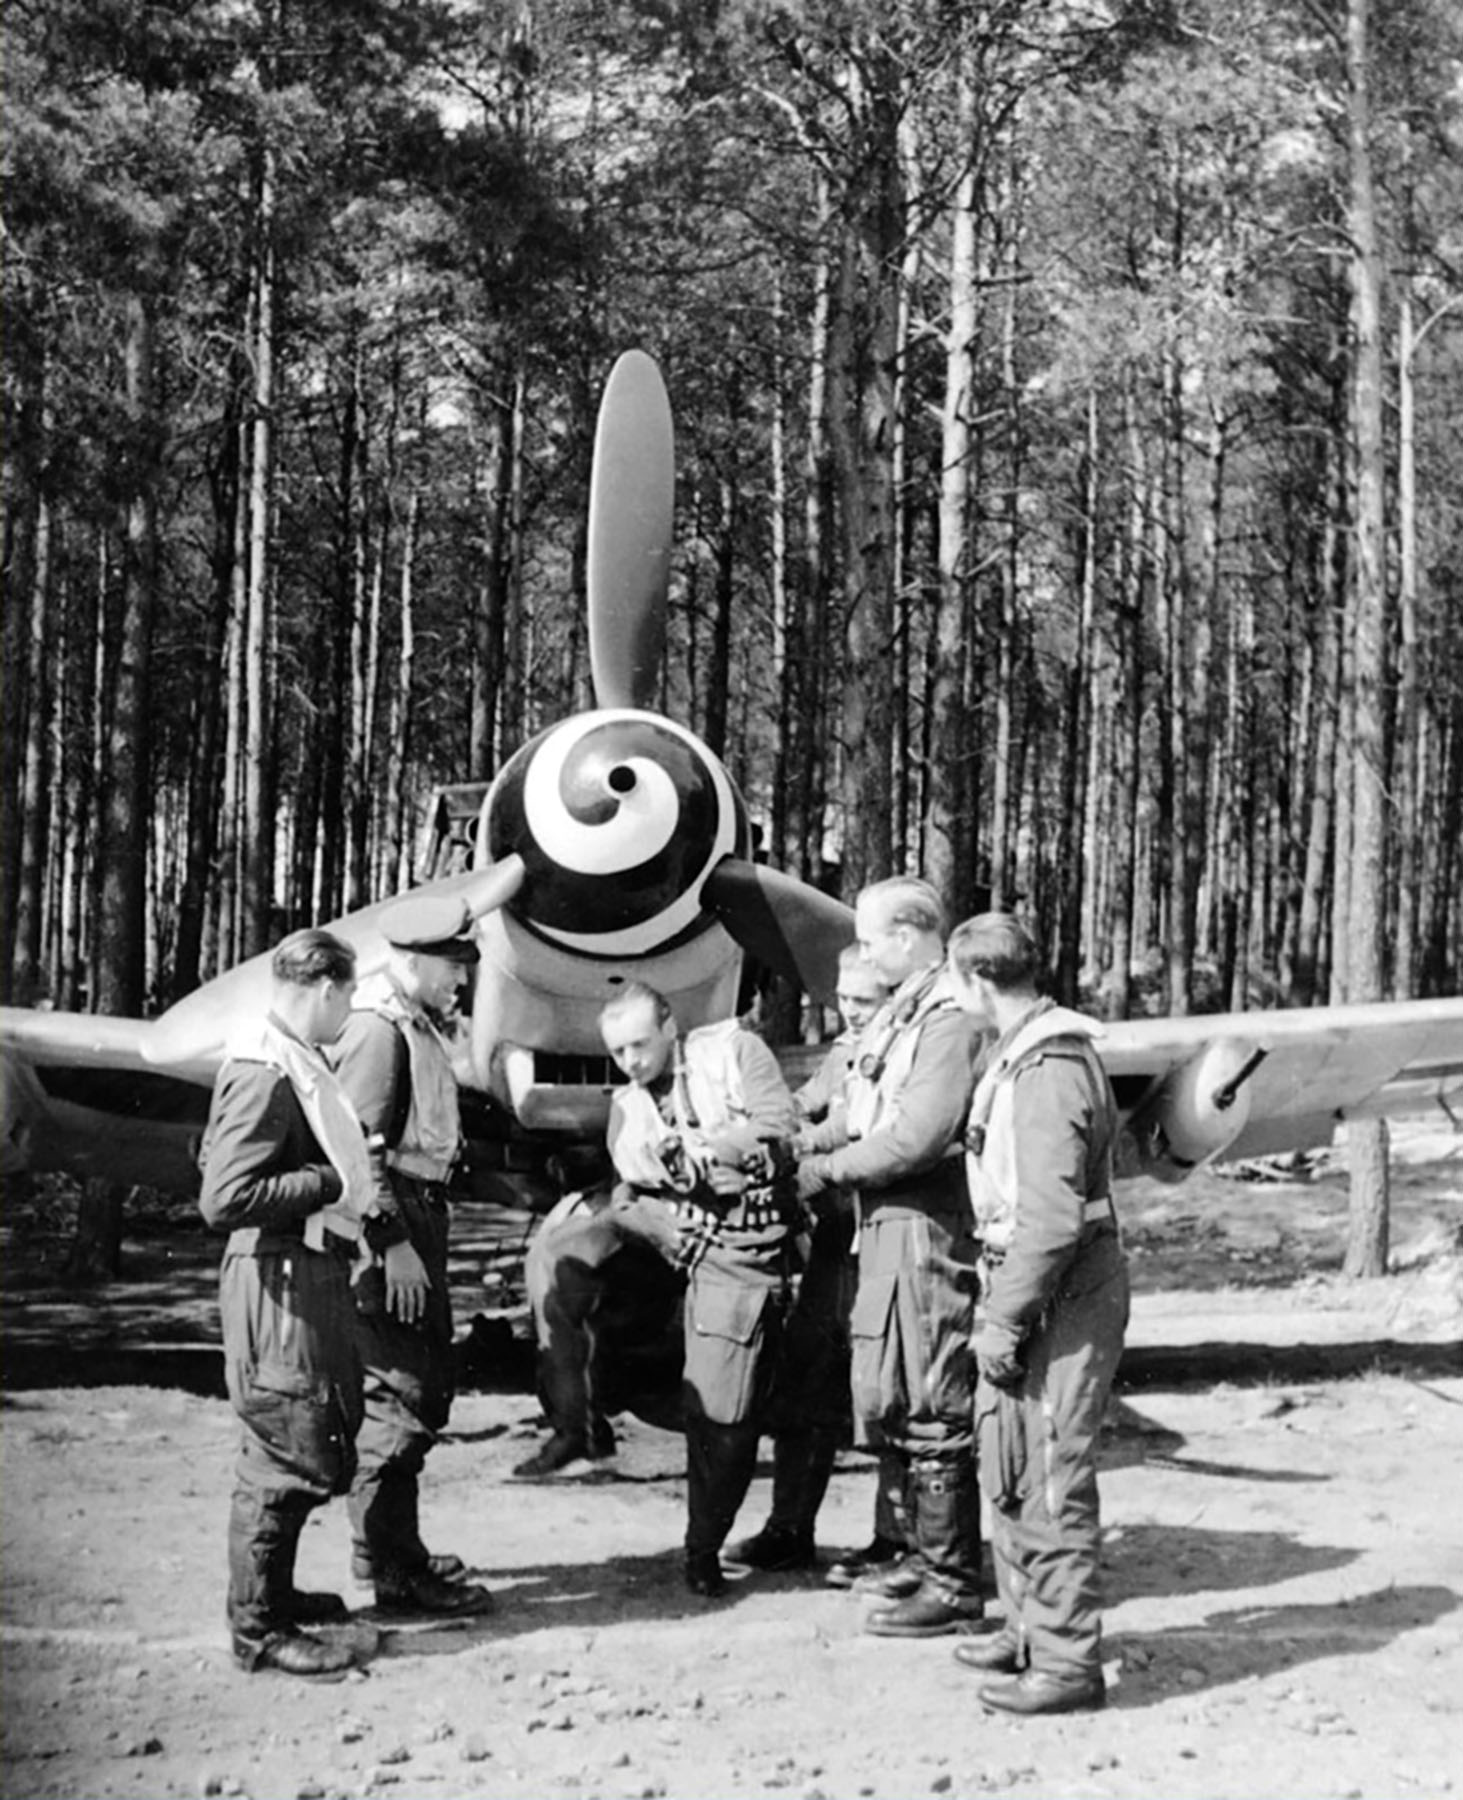 Aircrew Luftwaffe RVT pilots unknown unit in front of Bf 109G6R3R6 May 1944 01